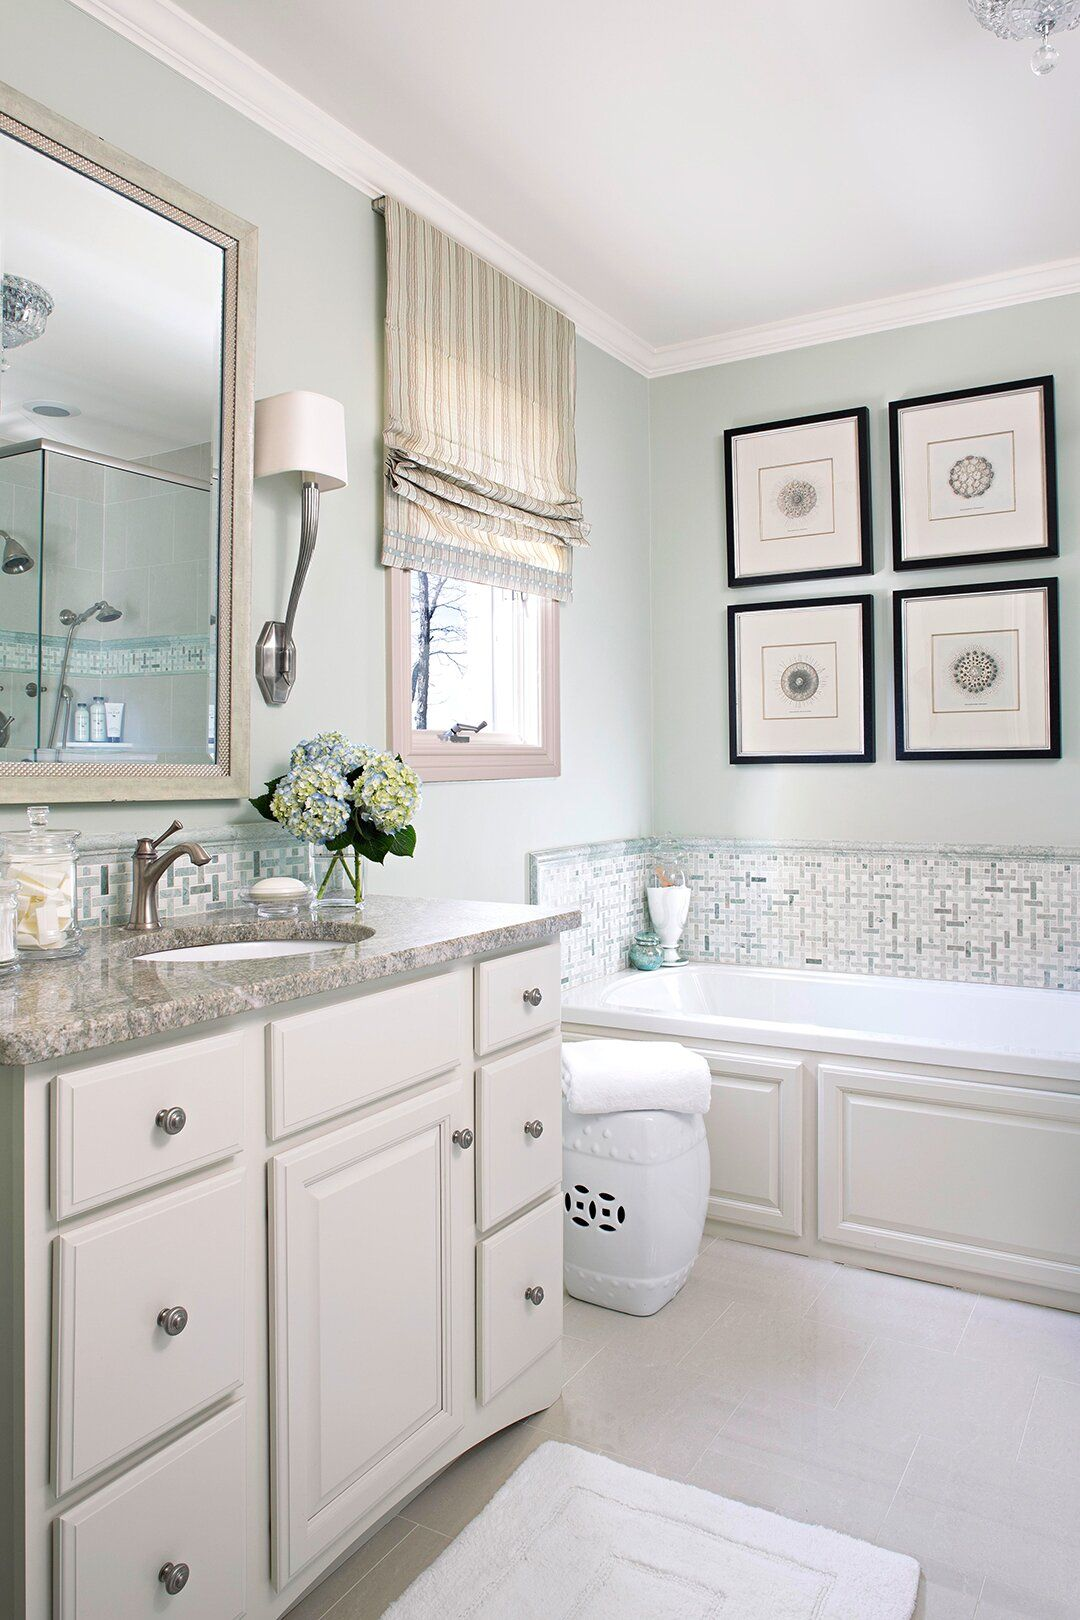 The 12 Best Bathroom Paint Colors Our Editors Swear By In 2020 Best Bathroom Paint Colors Best Bathroom Colors Popular Bathroom Colors,How To Decorate Your Room With Christmas Lights